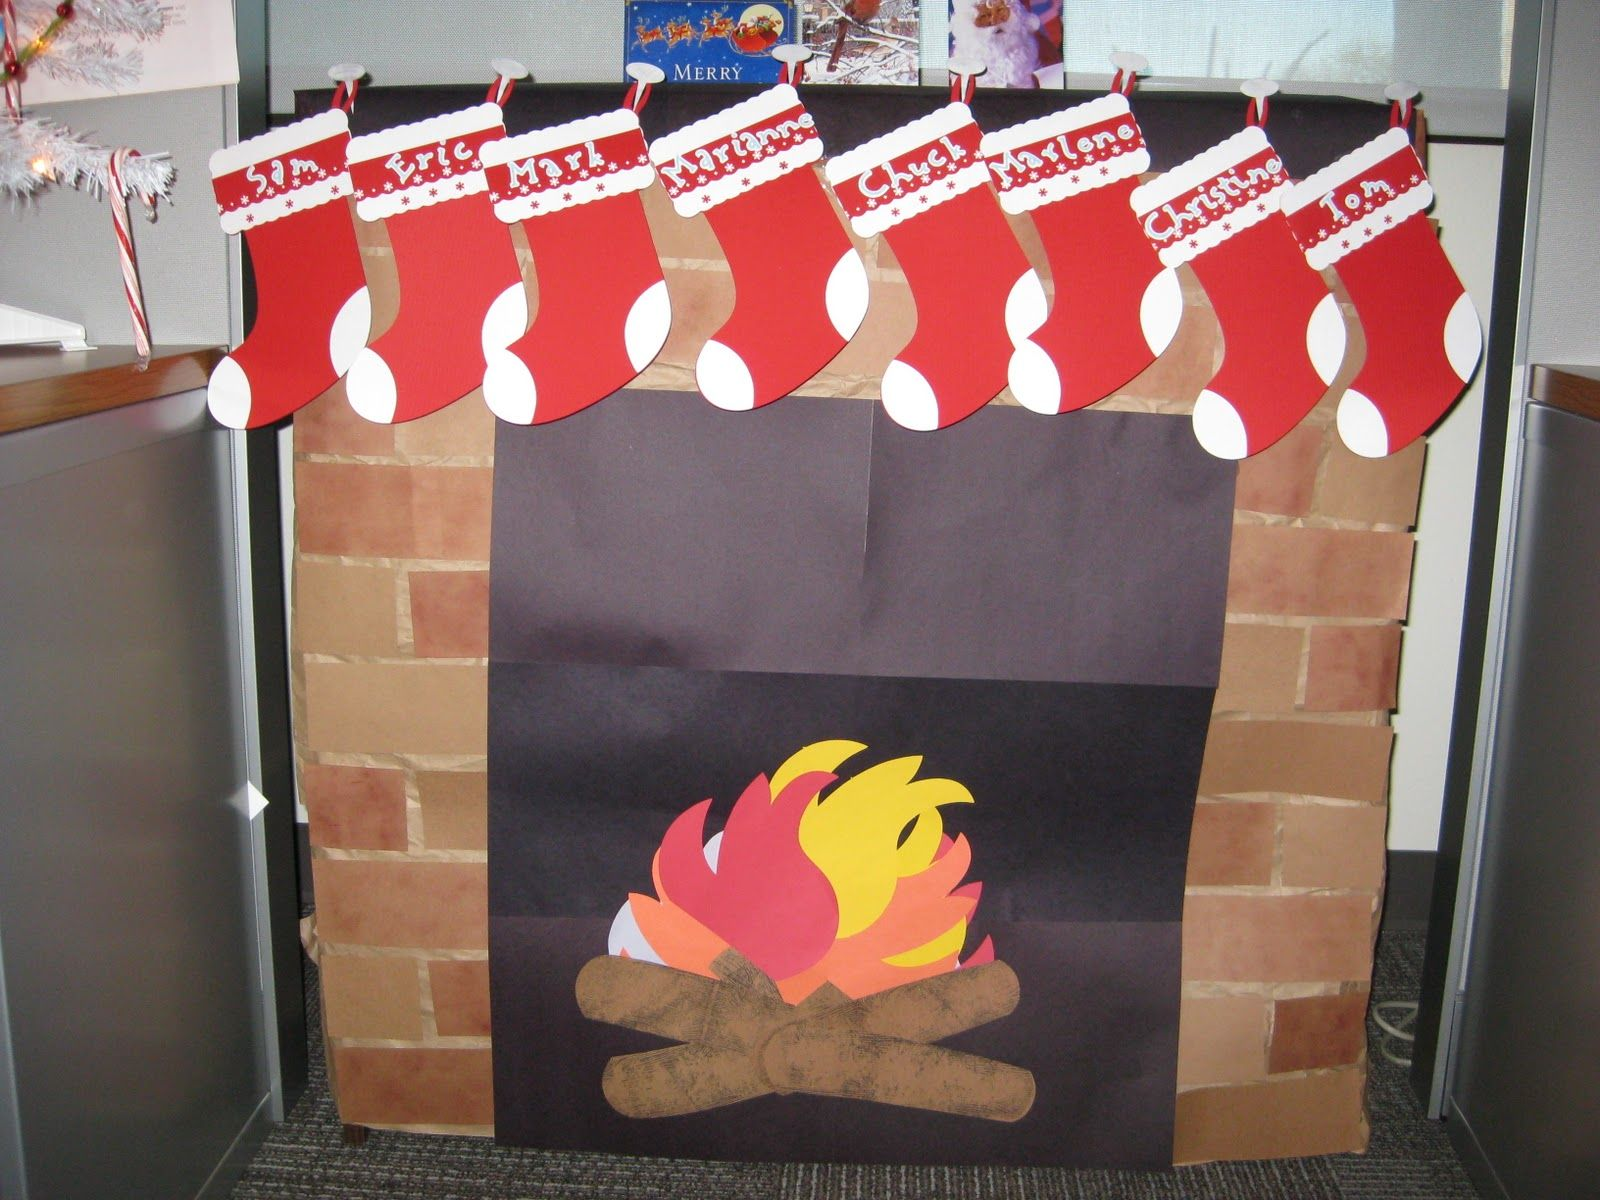 Next year, I want to make one of these for Christmas in my classroom, using the bookshelf... the stockings would have famous artists' names on them